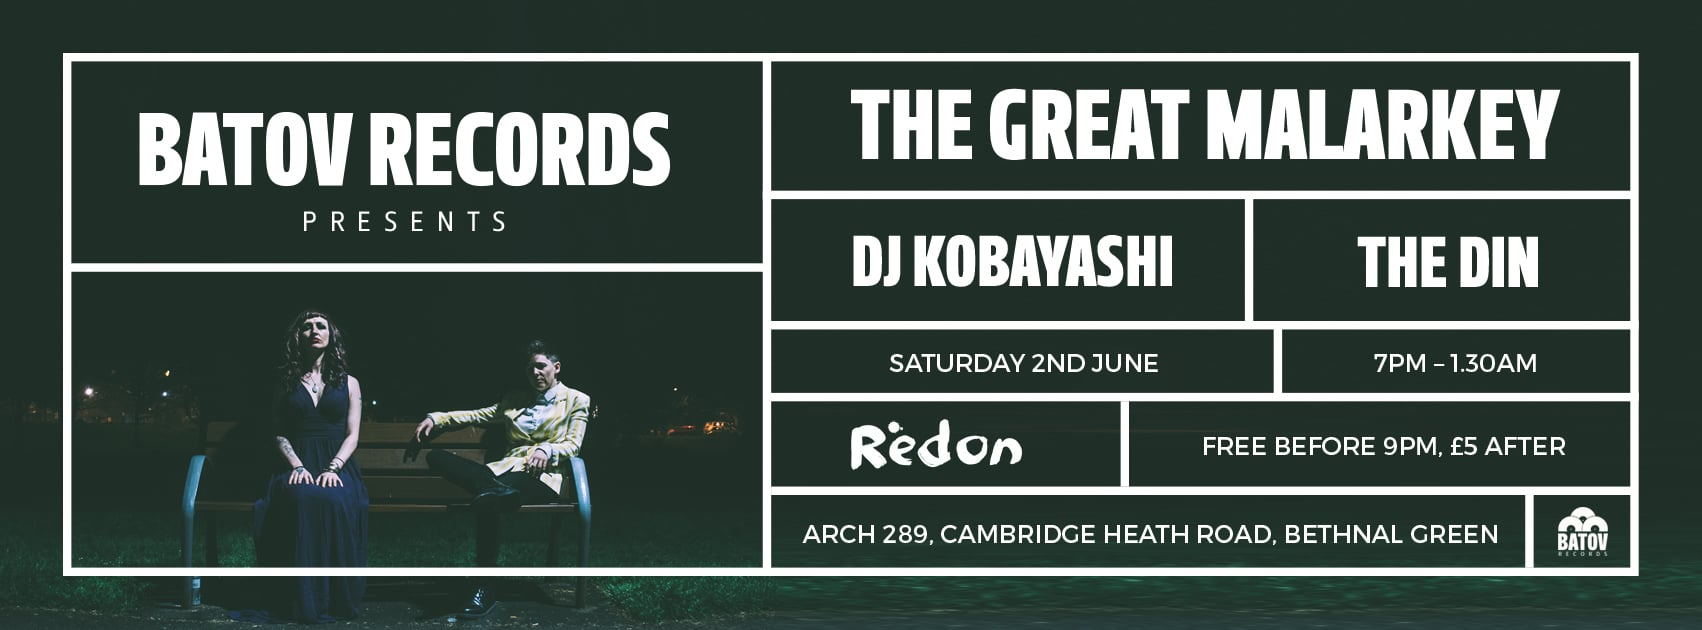 Batov Records are coming to Bethnal Green 2